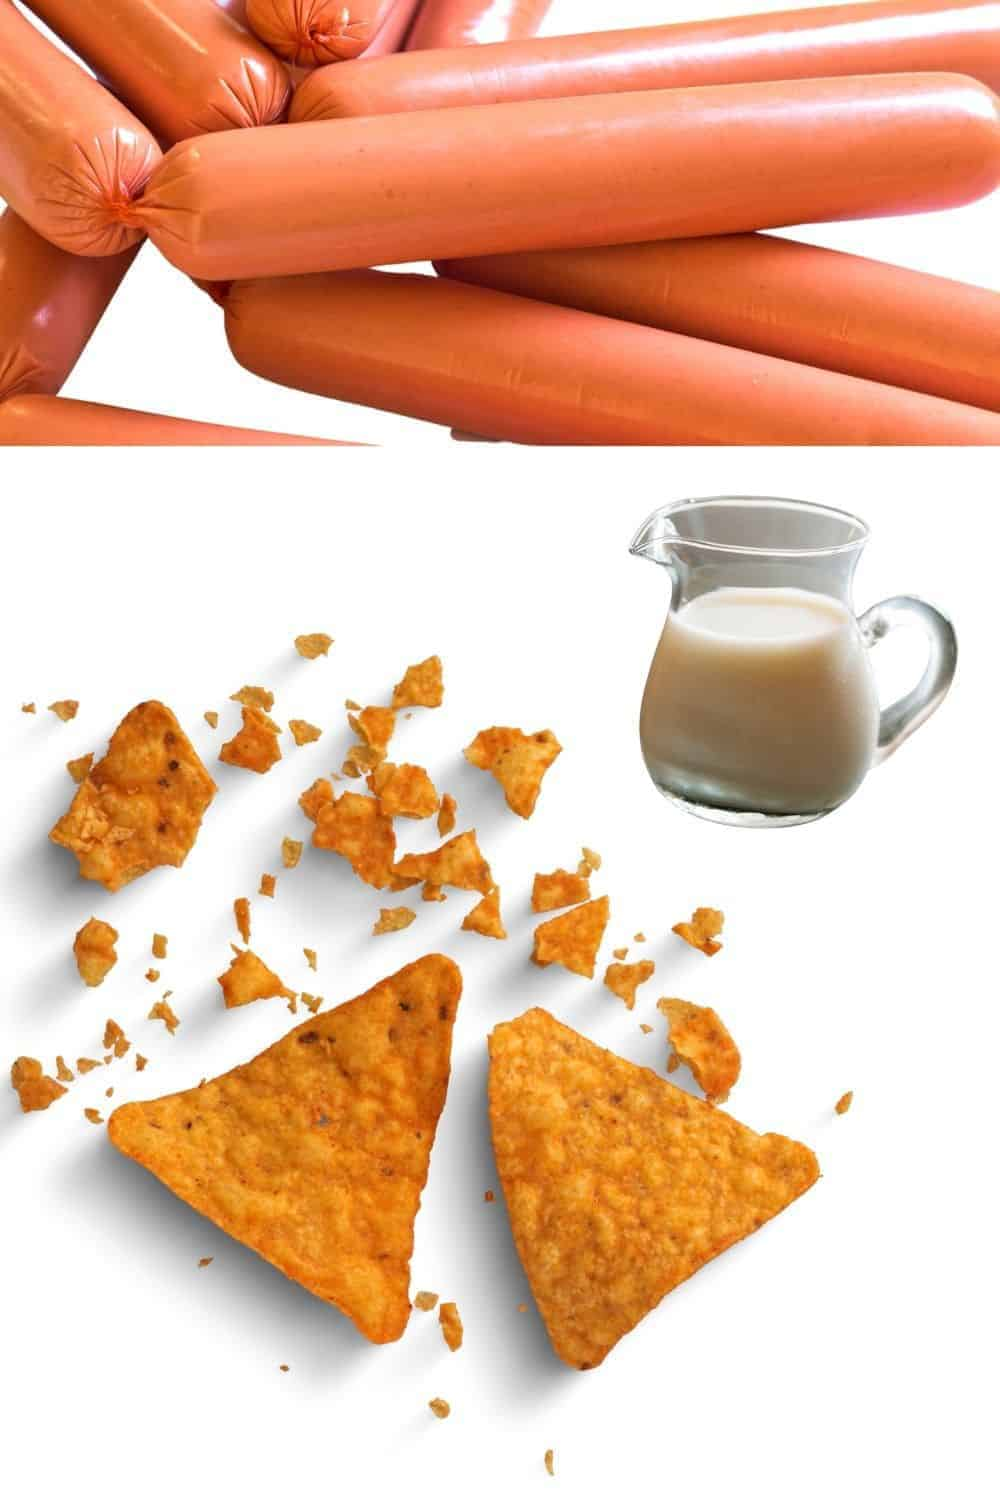 Doritos buttermilk and hot dogs to make air fryer hot dogs with Doritos Crunch